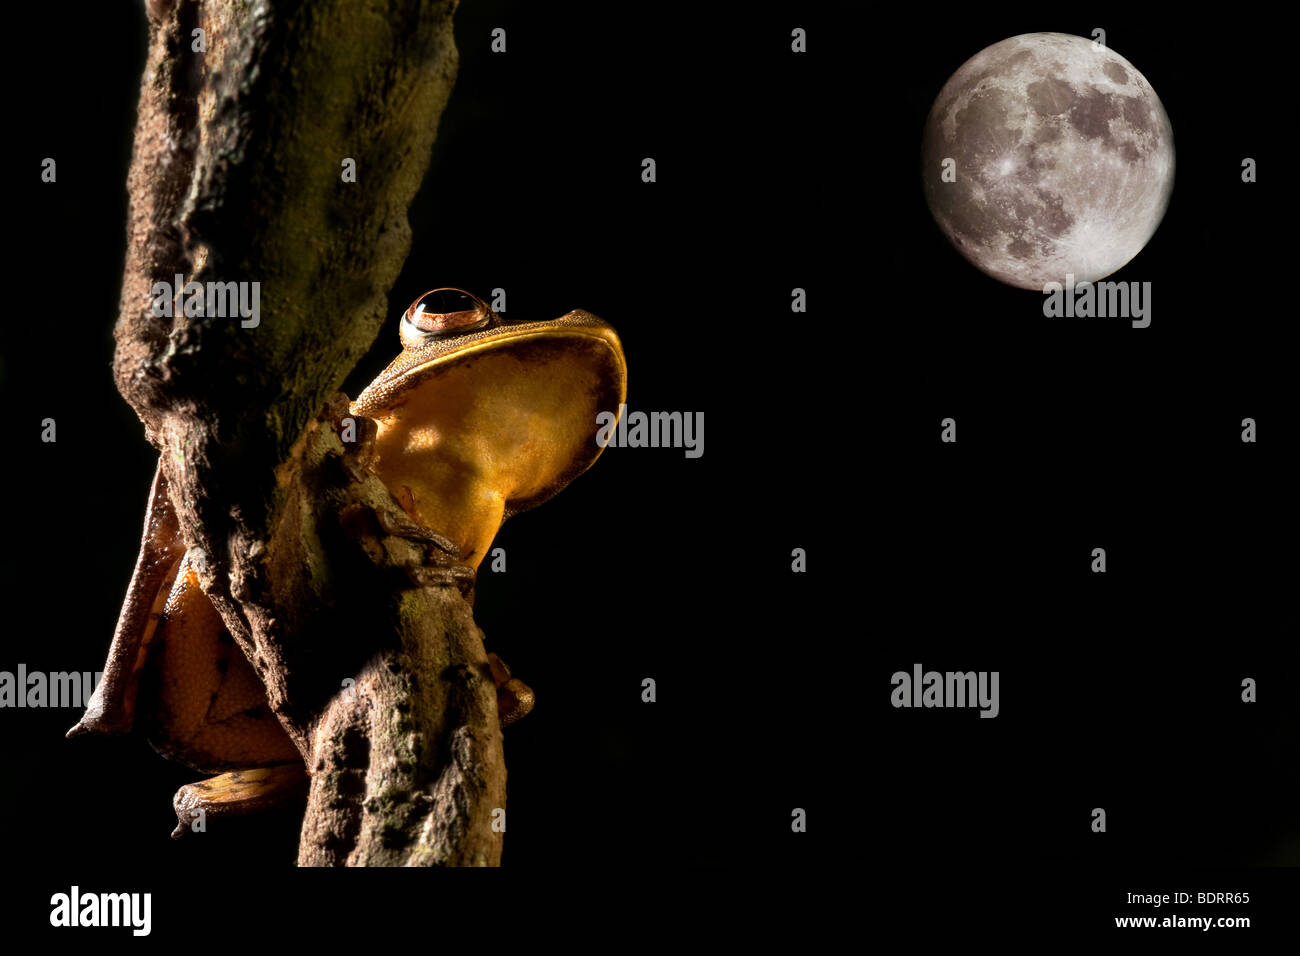 tree frog hypsiboas geograficus at night in the Bolivian jungle - Stock Image